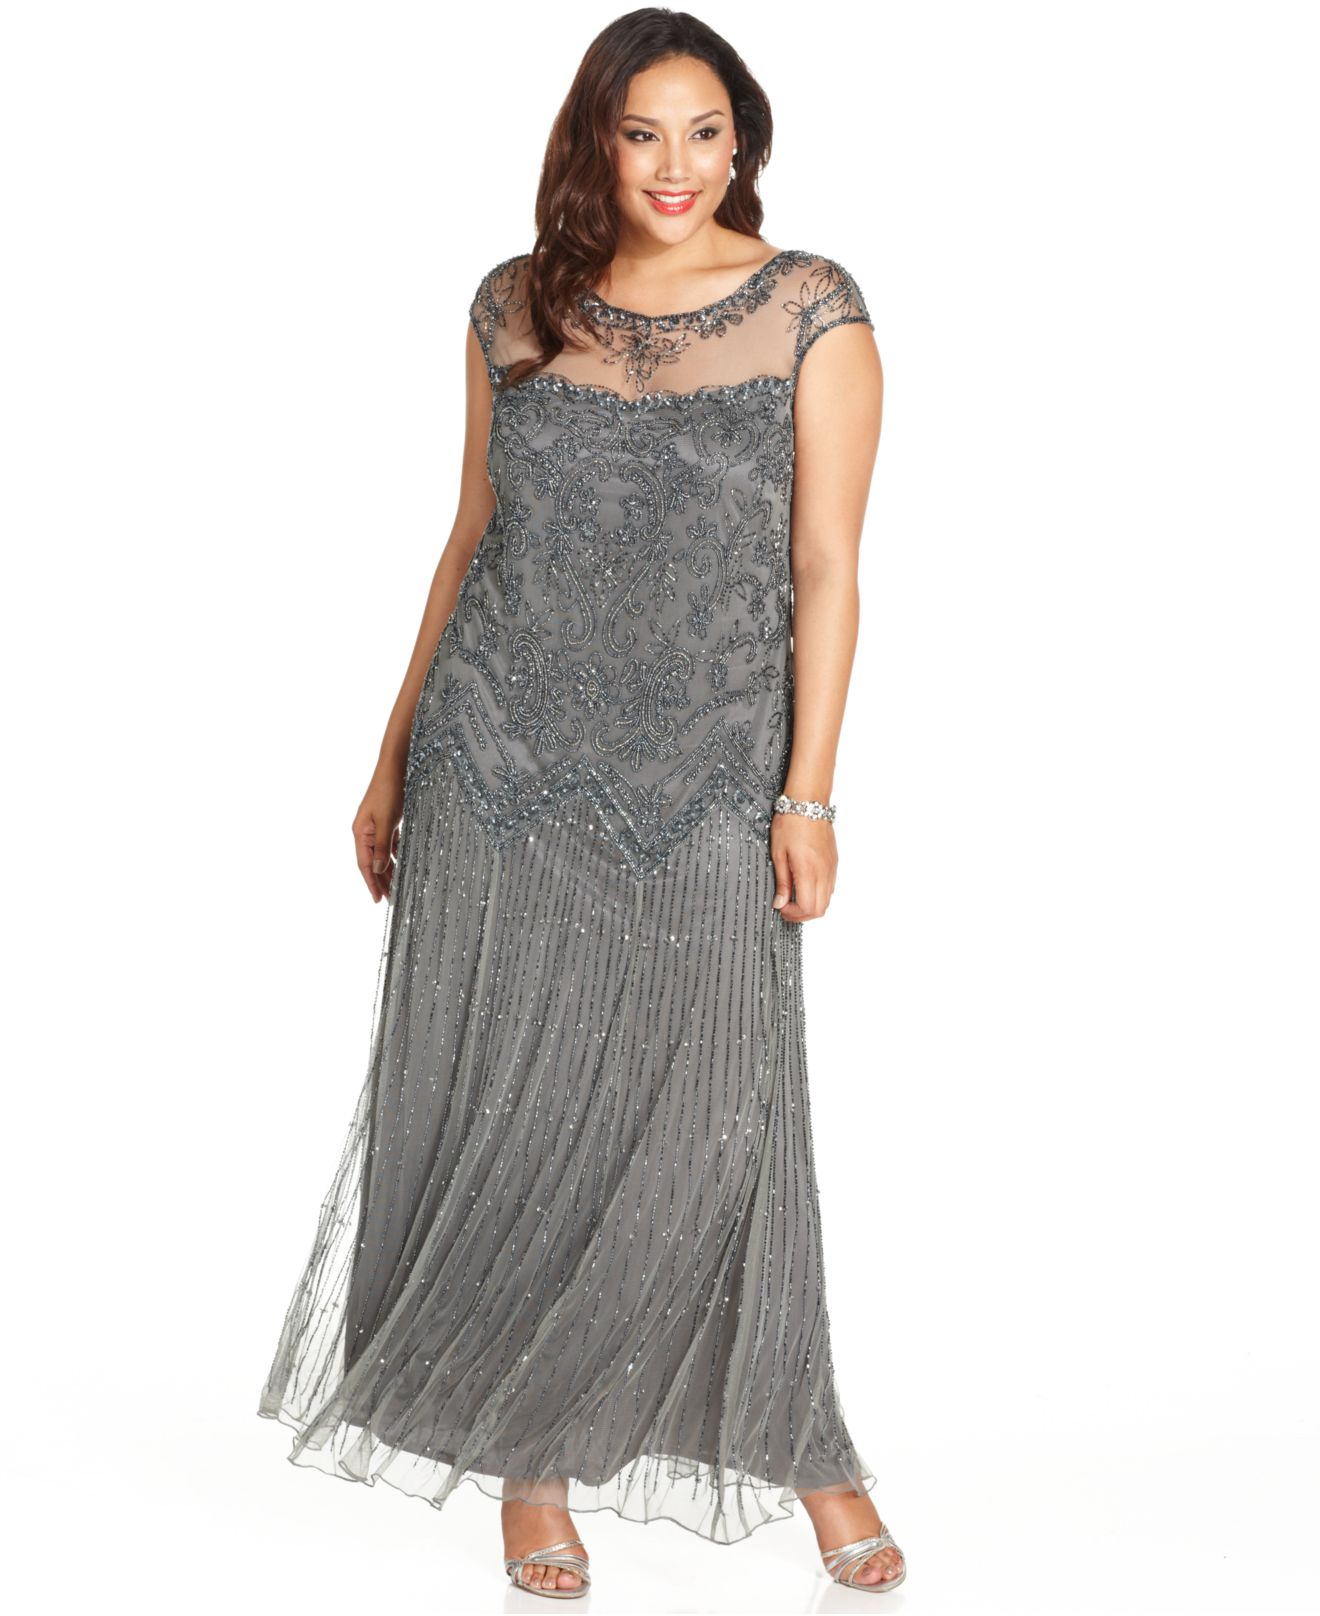 Lyst - Pisarro Nights Plus Size Illusion Embellished Gown in Gray